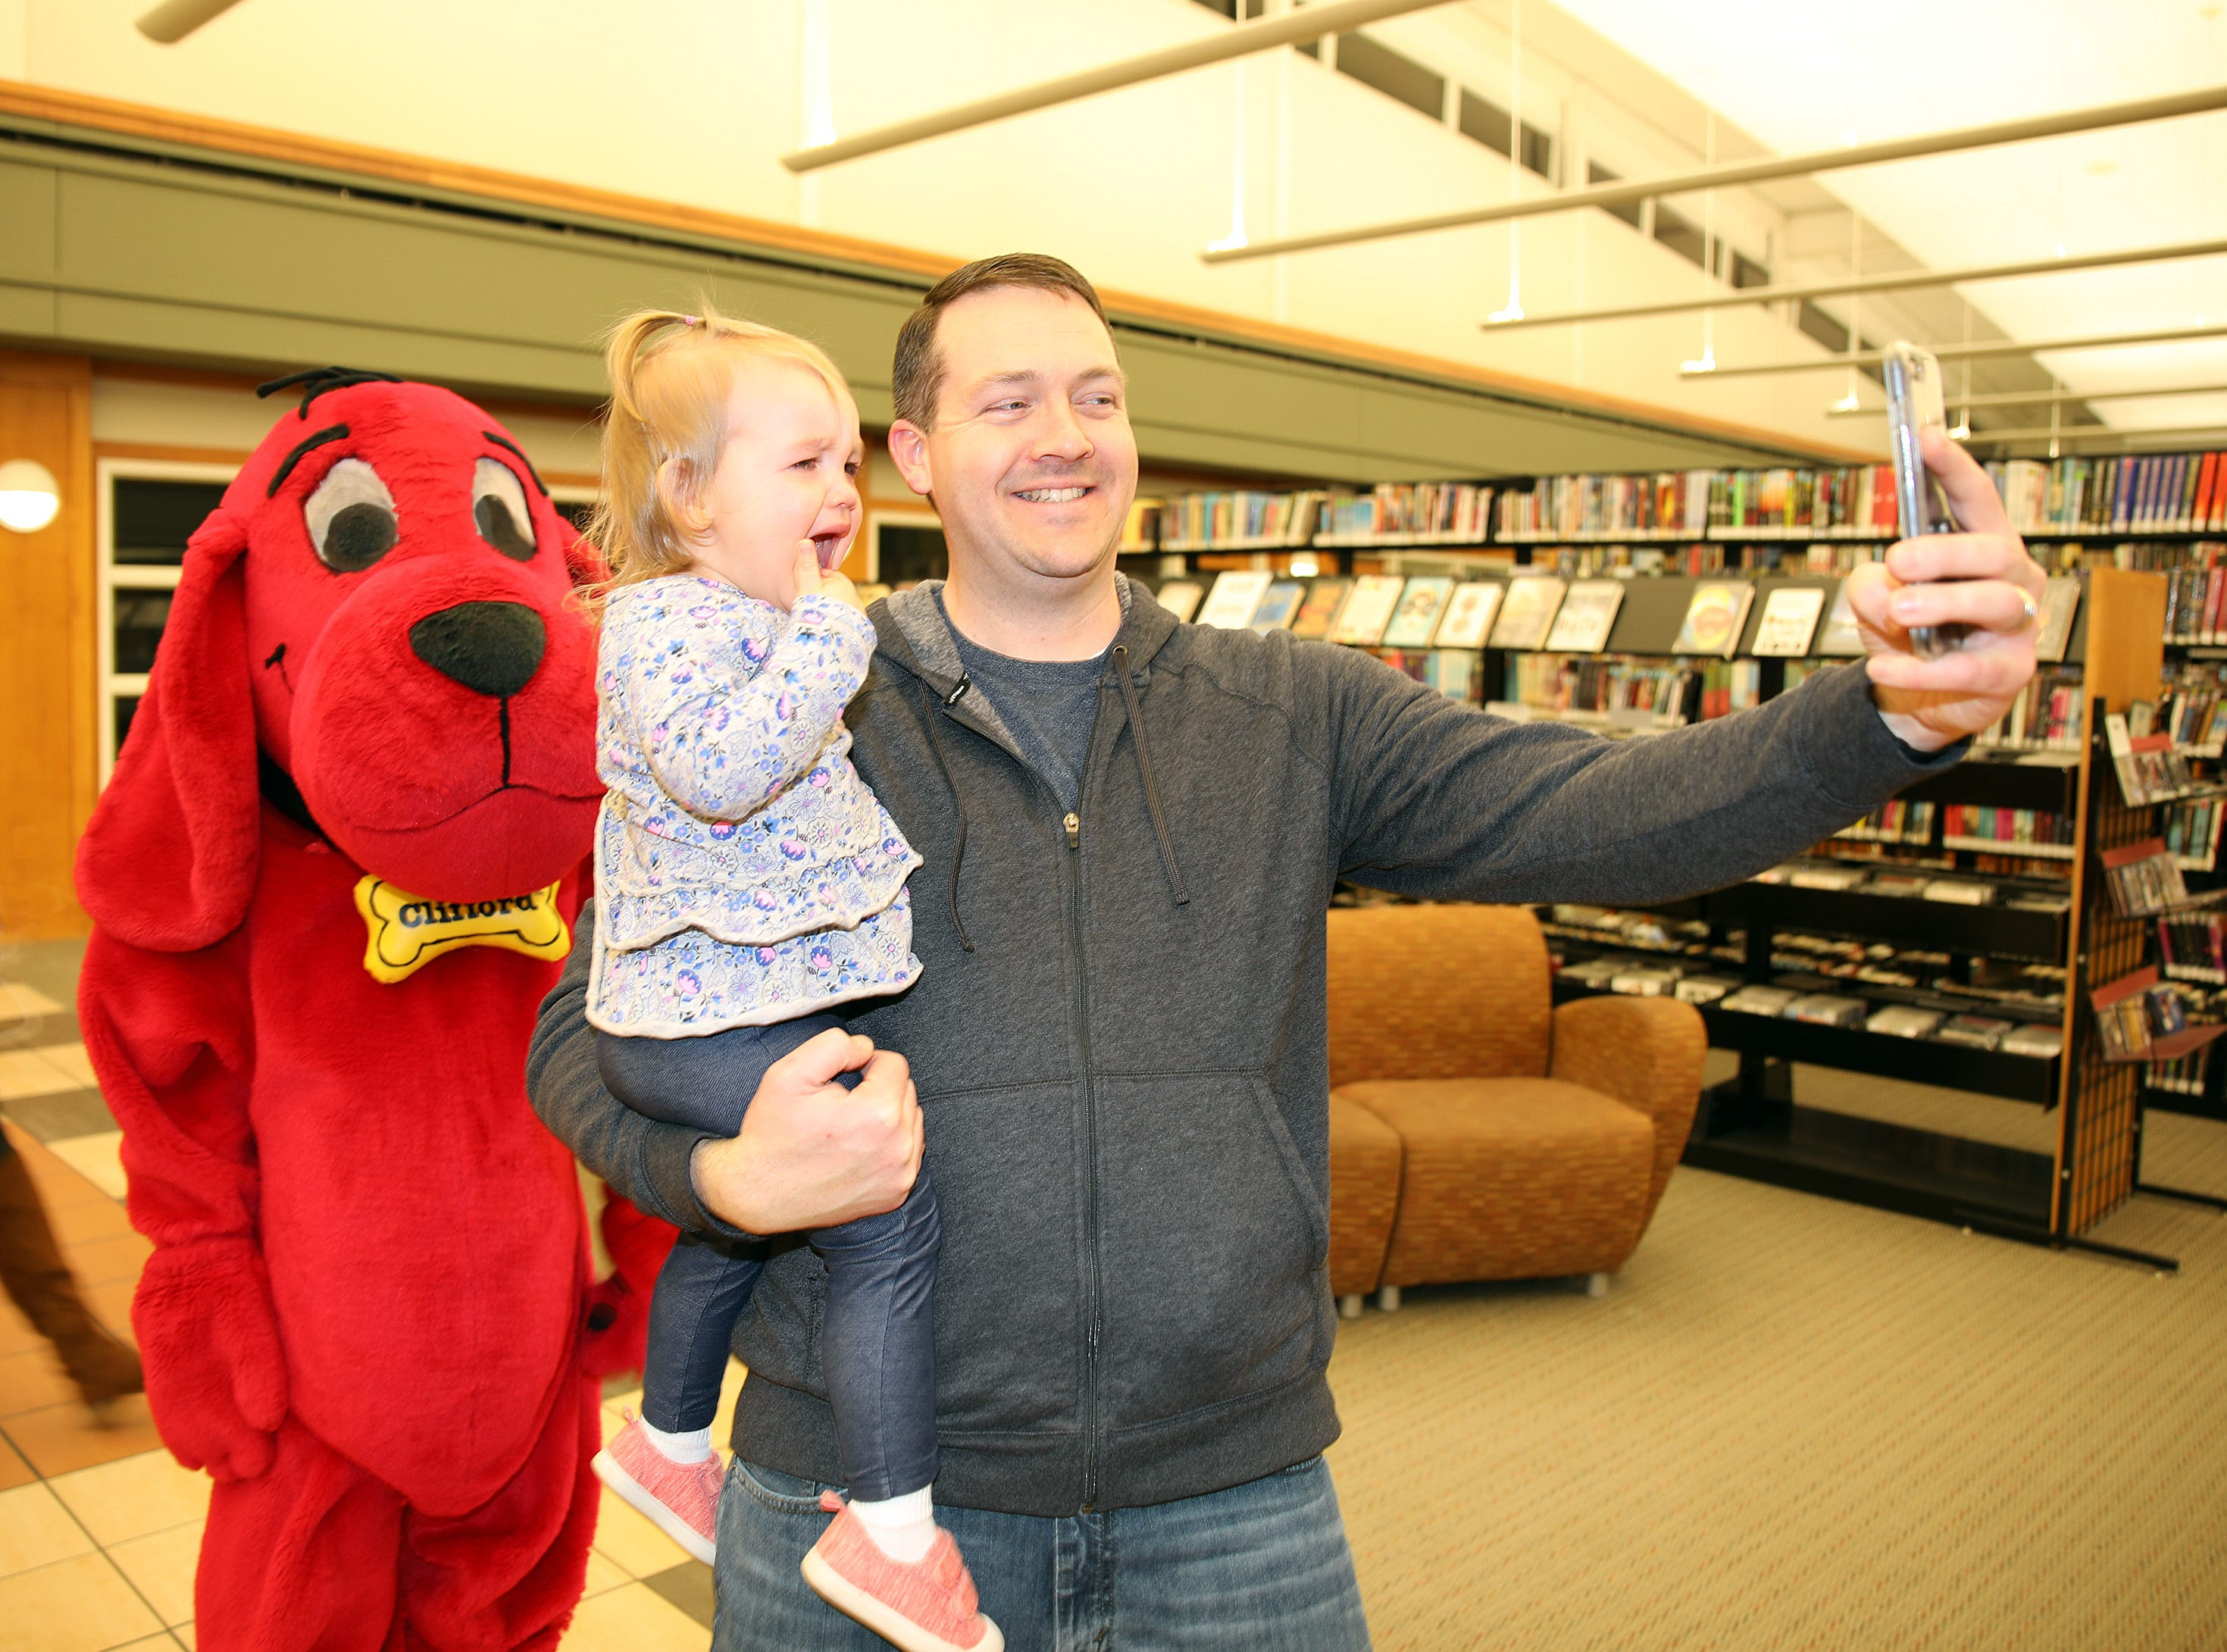 Andy Stearns of Ankeny snaps a quick selfie with his daughter, Abi, 2, and a Clifford the Big Red Dog during Clifford's birthday party at Kirkendall Public Library in Ankeny on Tuesday, Feb. 5, 2019.